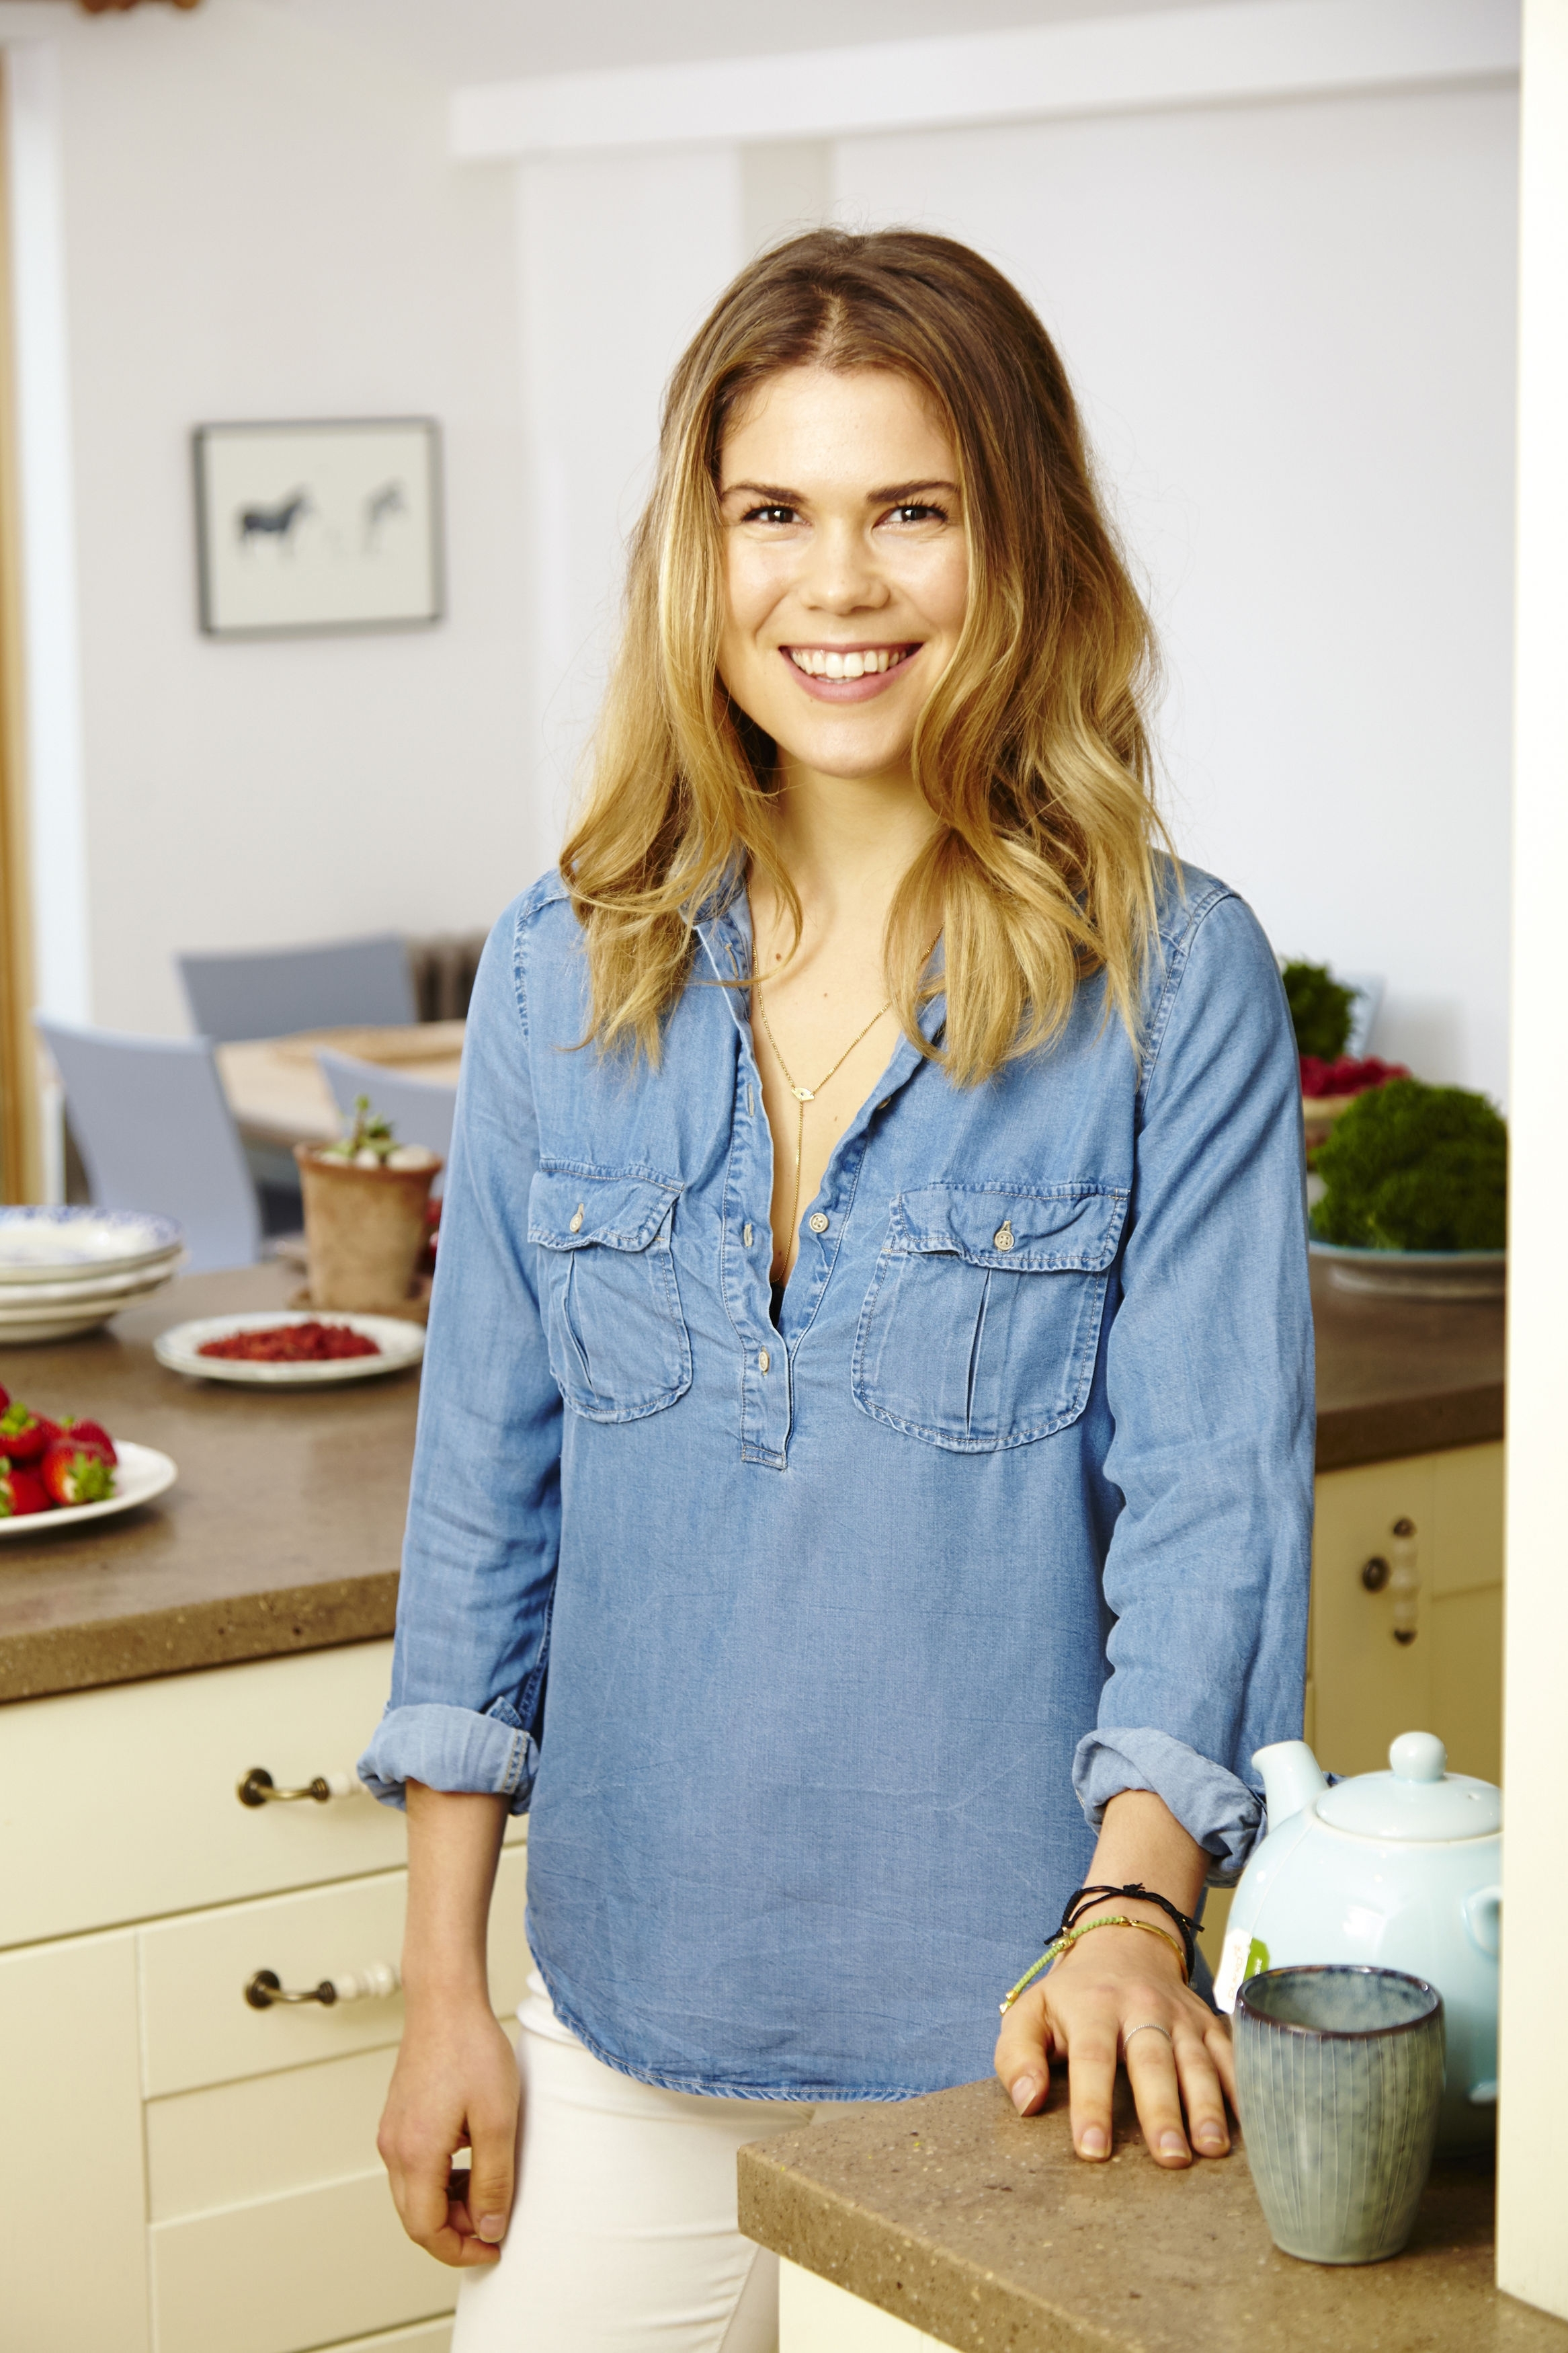 Three recipes from Madeleine Shaw | Bournemouth Echo